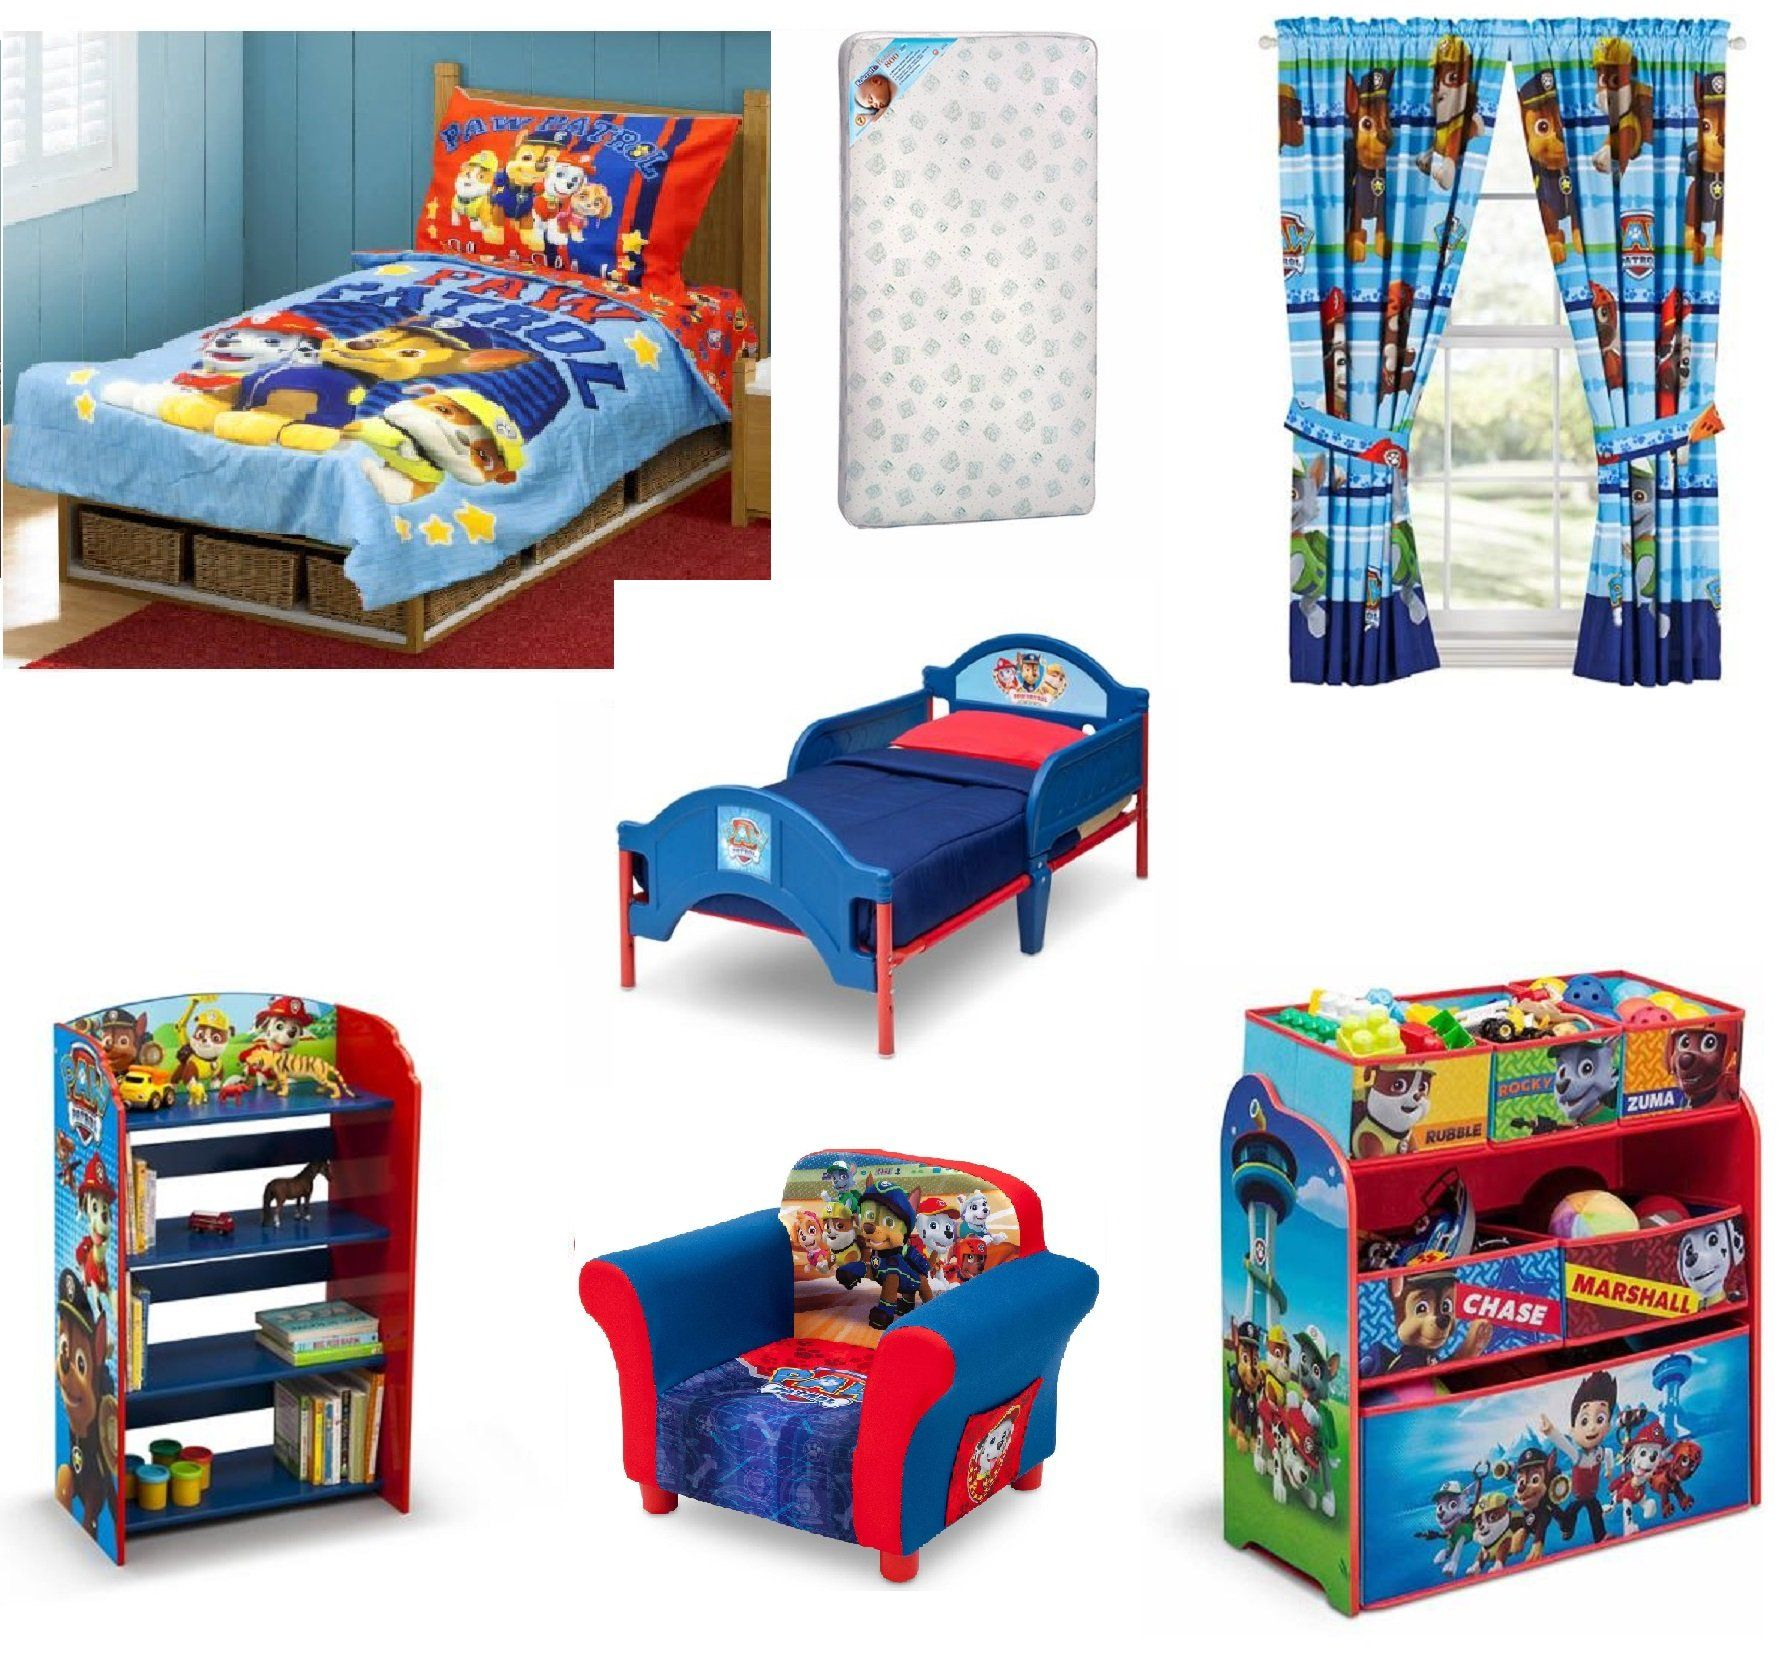 Toddler Character Bed Mattress And Complete Bedding Bedroom Bundle Set Toddler Bed Set Bedroom Furniture Sets Bedroom Bed